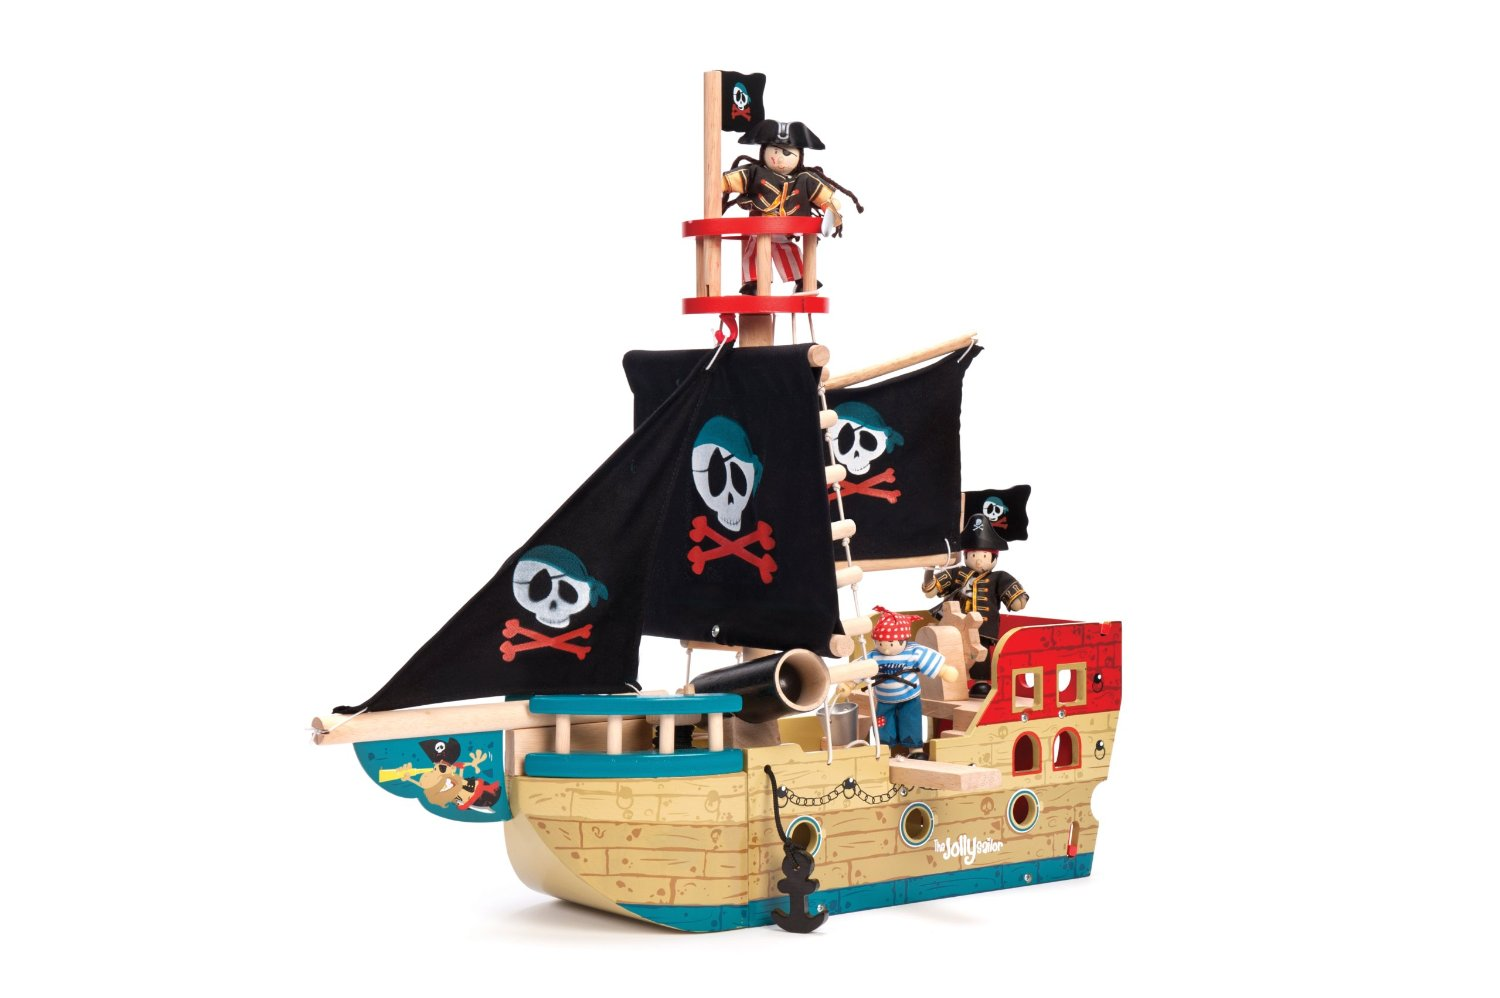 Le toy van jolly pirate ship wooden toy pirate ships wooden toys